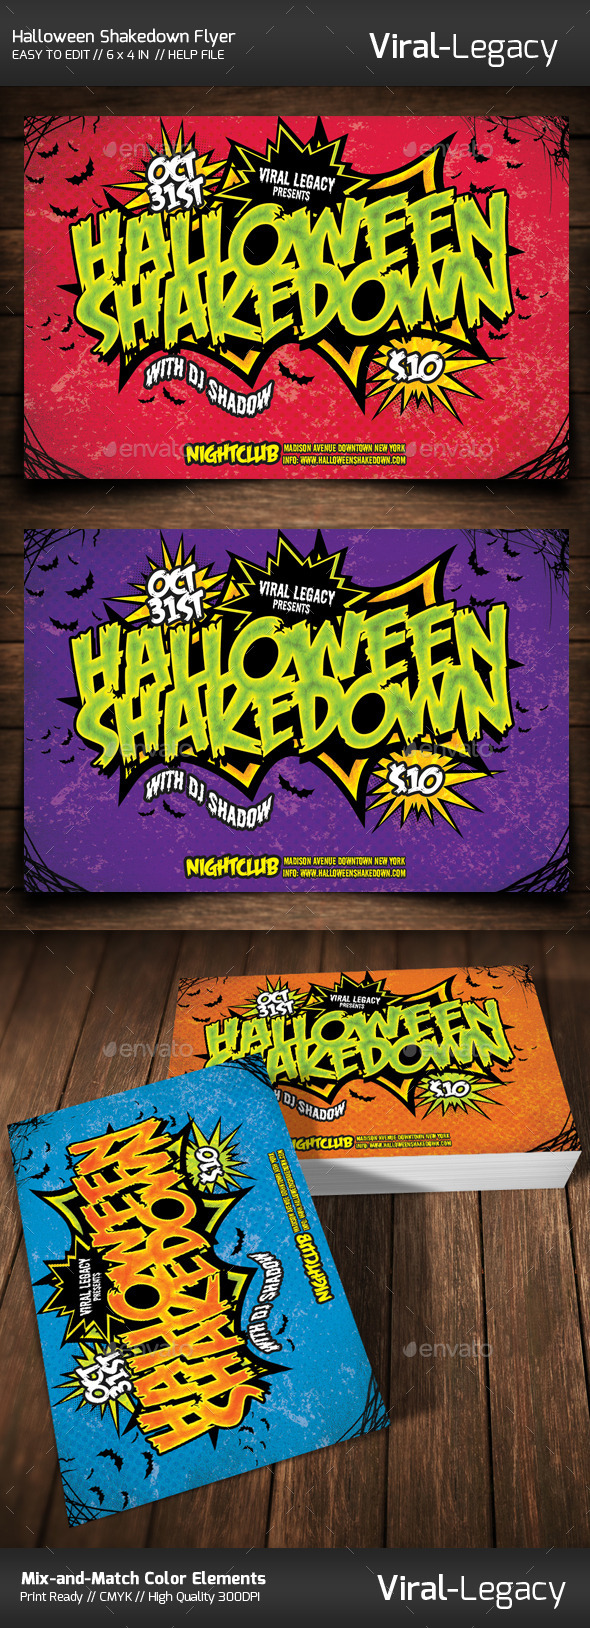 Halloween Shakedown Flyer - Flyers Print Templates